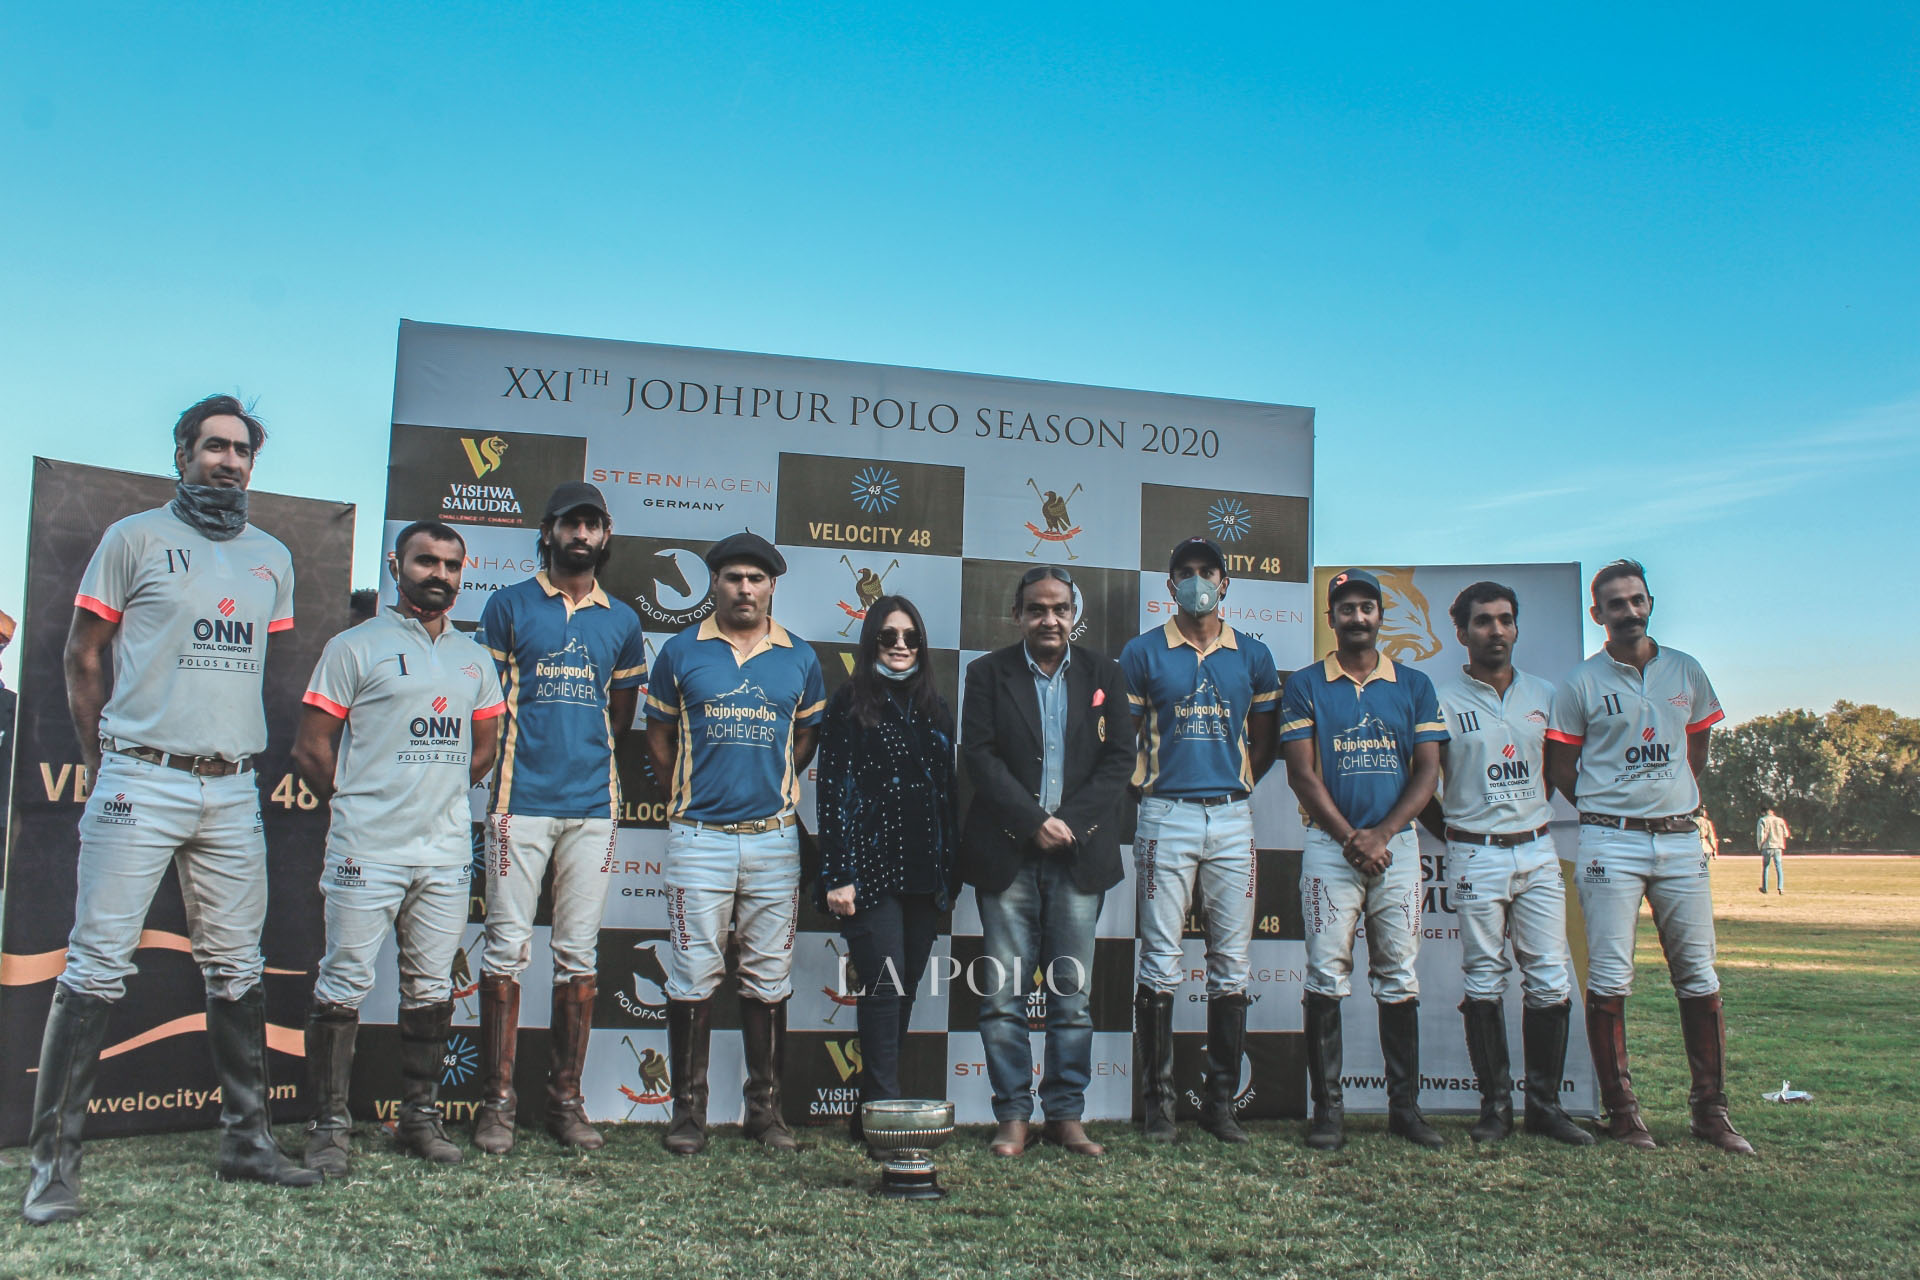 RAJNIGANDHA ACHIEVERS OVERCOME ACHIEVERS ONN TO CONQUER THE H.H. MAHARAJA OF JODHPUR CUP AT THE 21st JODHPUR POLO SEASON 2020!